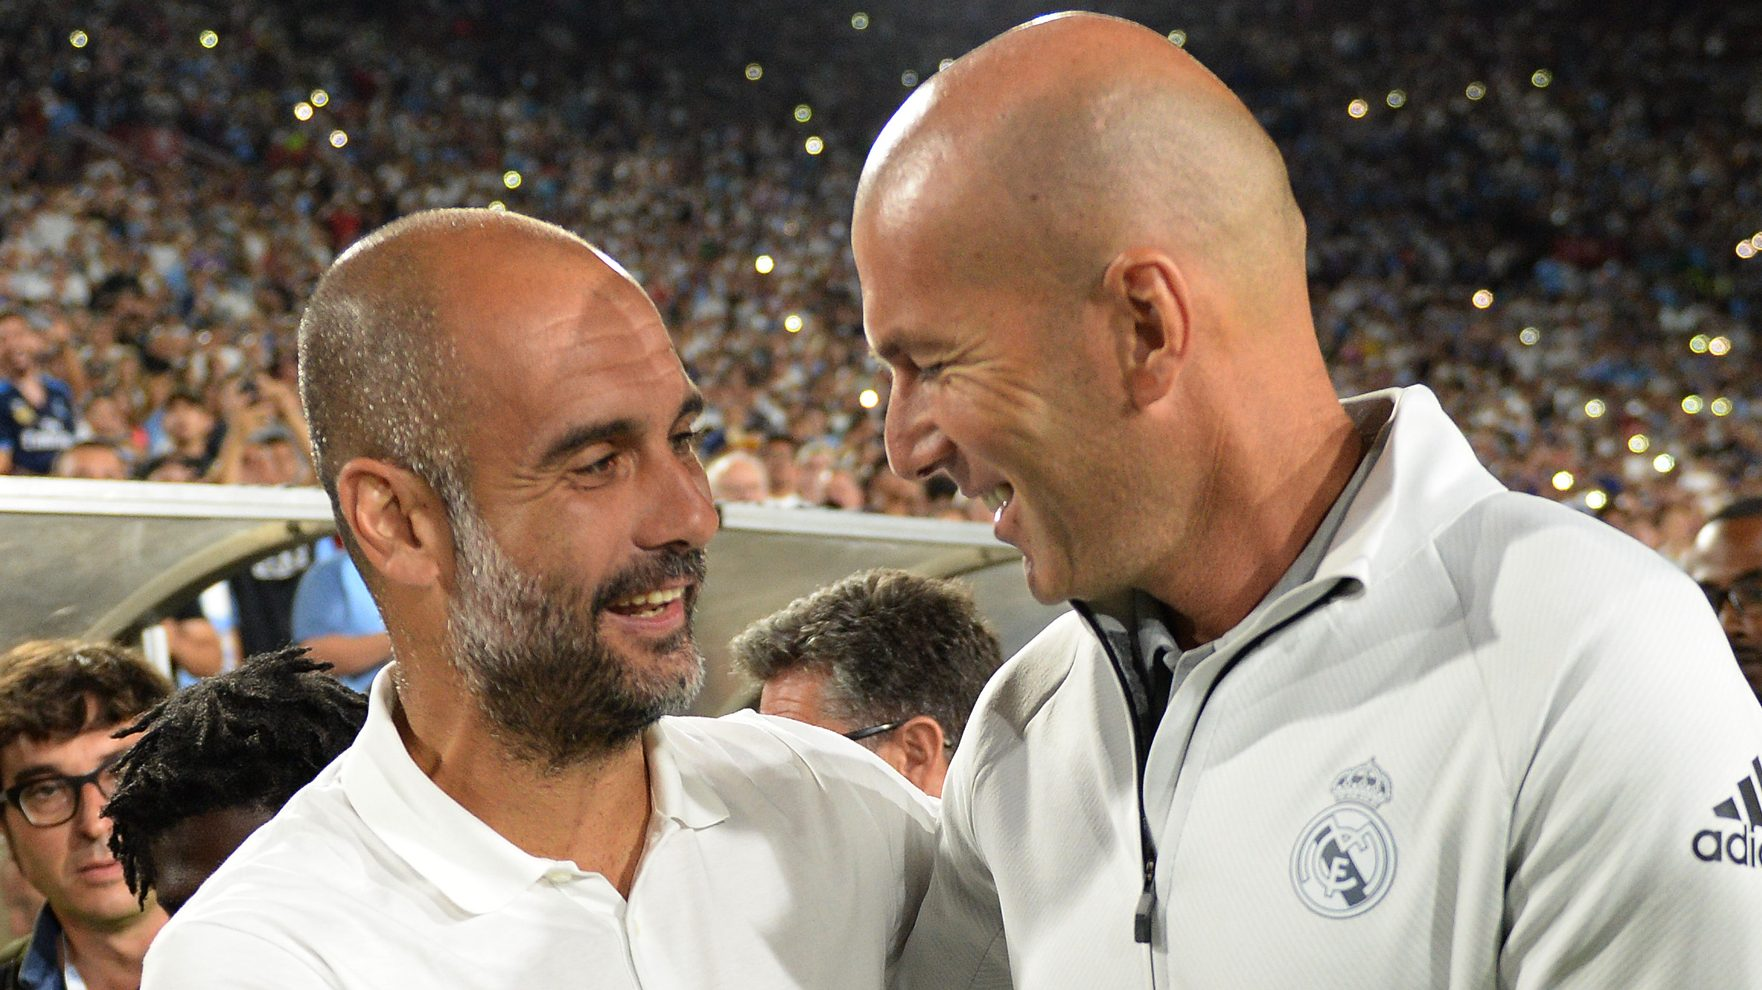 Champions League: Real Madrid renews Pep rivalry; Lyon hosts Juve